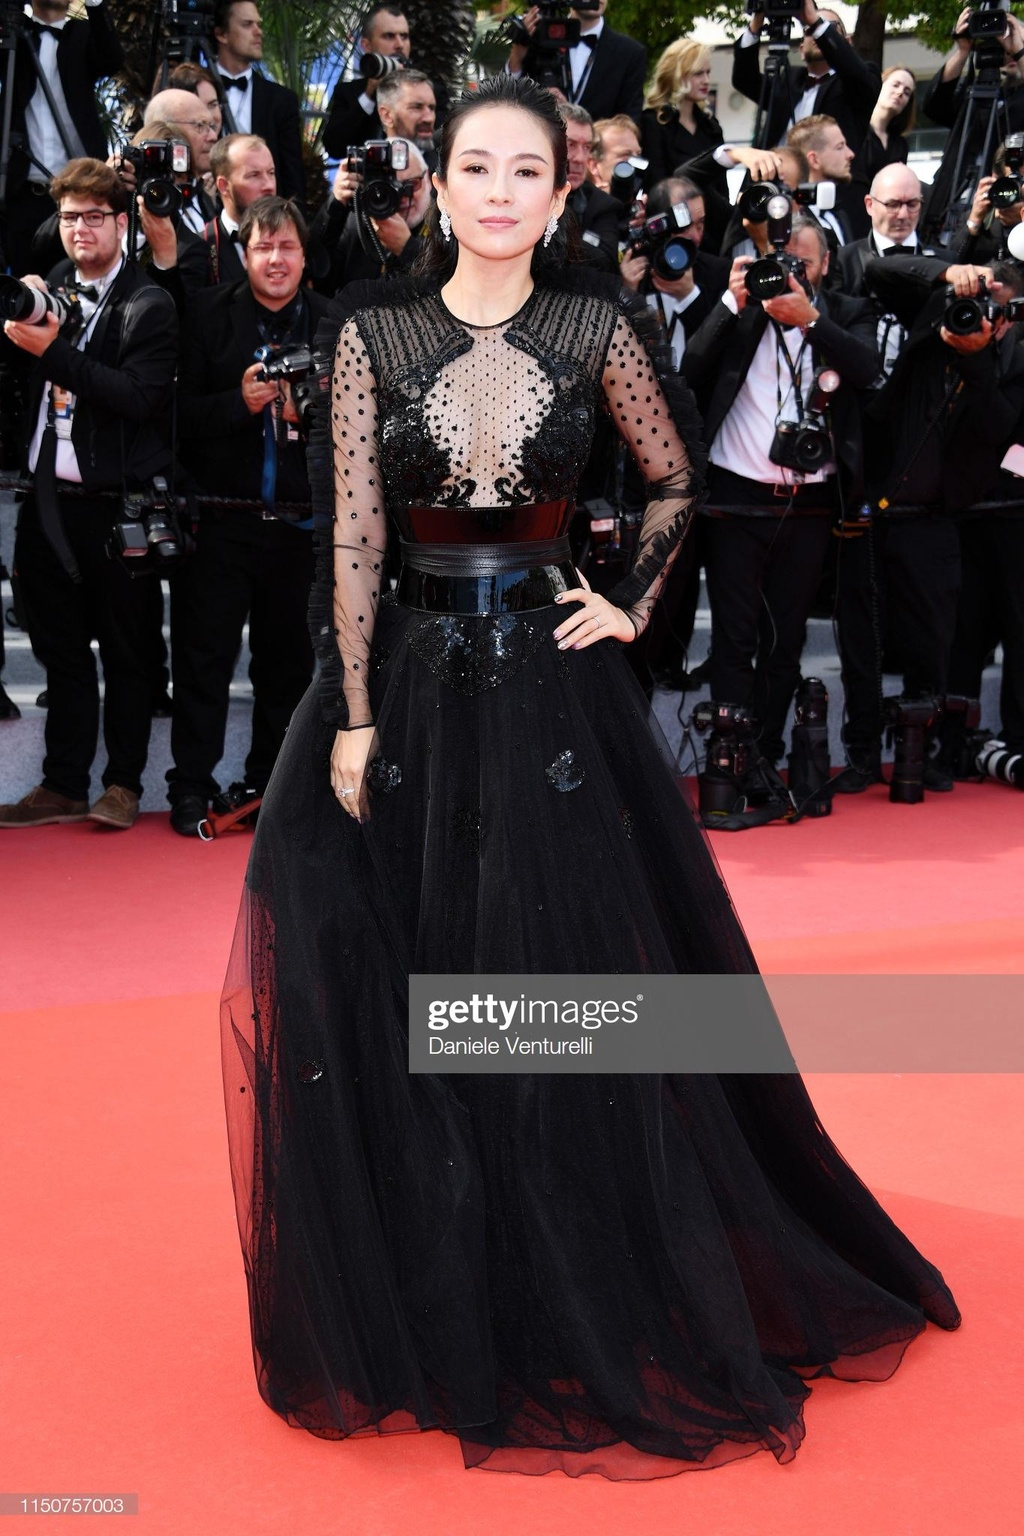 Lien hoan phim Cannes 2019 anh 6